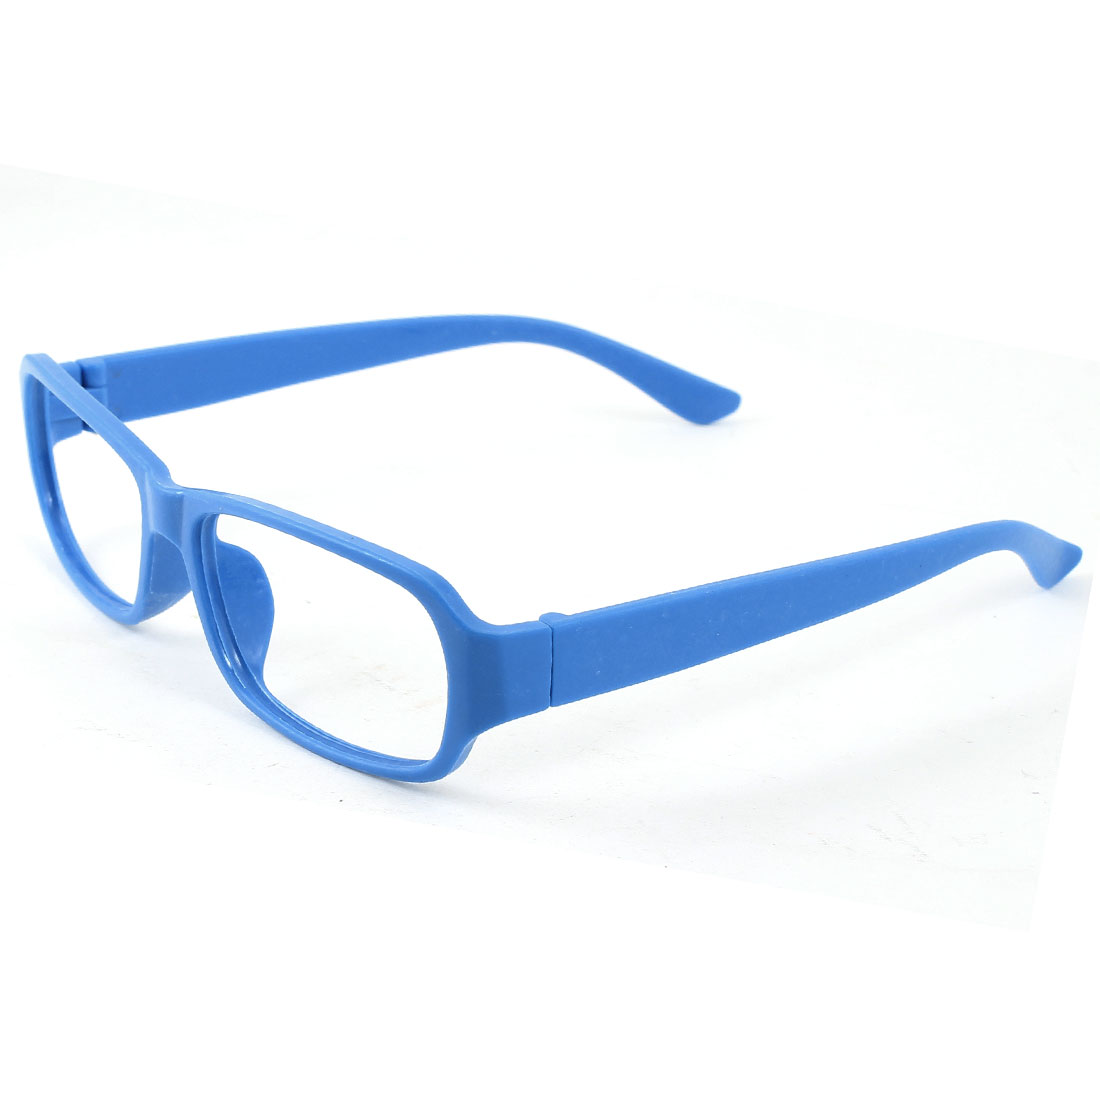 Blue Plastic Full Rim Rectangular Eyeglasses Frame for Women